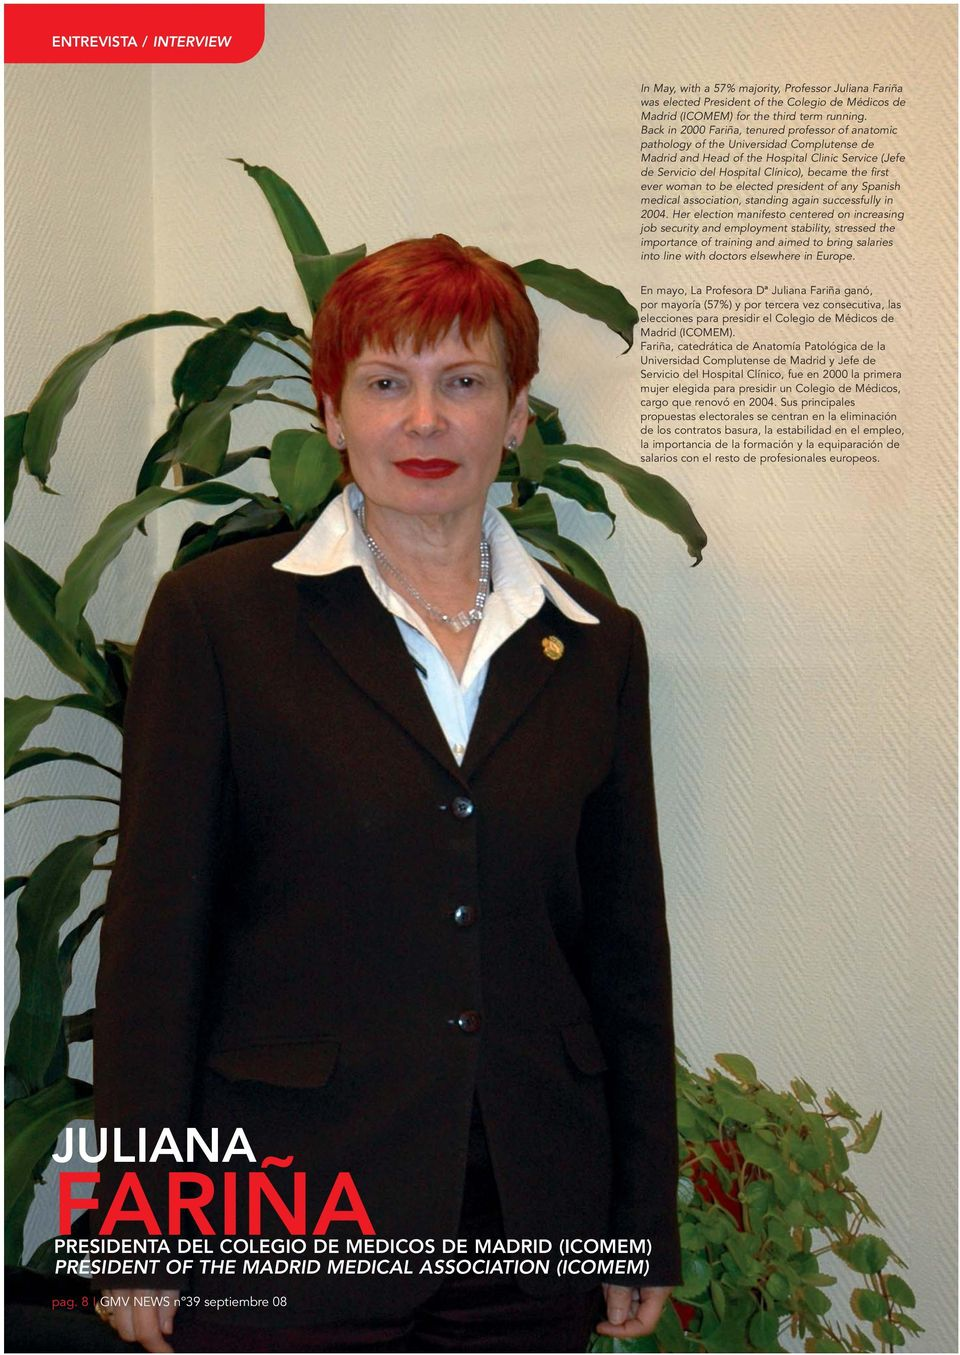 ever woman to be elected president of any Spanish medical association, standing again successfully in 2004.